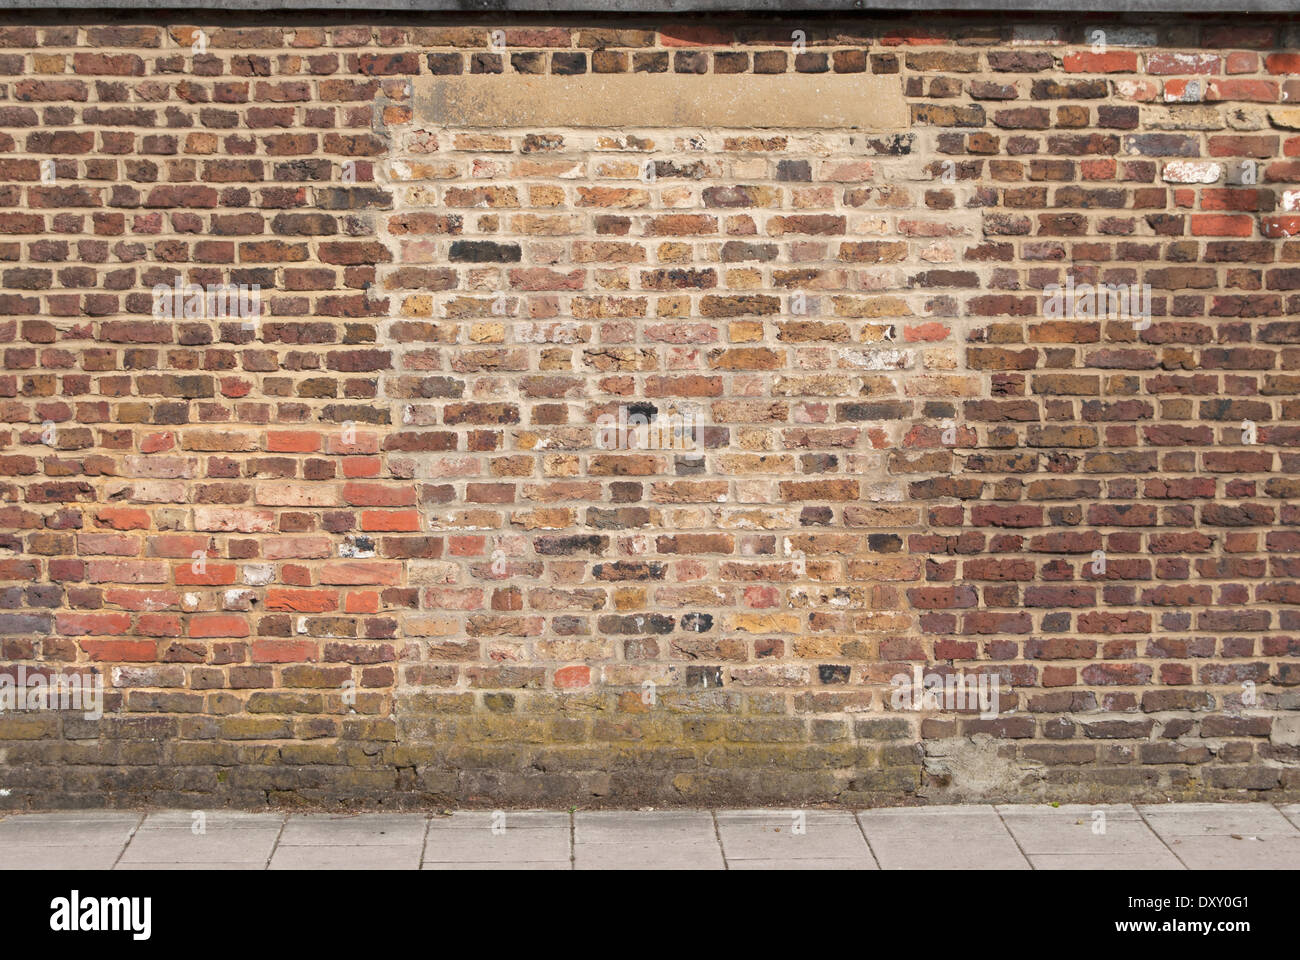 brick wall showing evidence of at least two repaired sections, teddington, middlesex, england - Stock Image